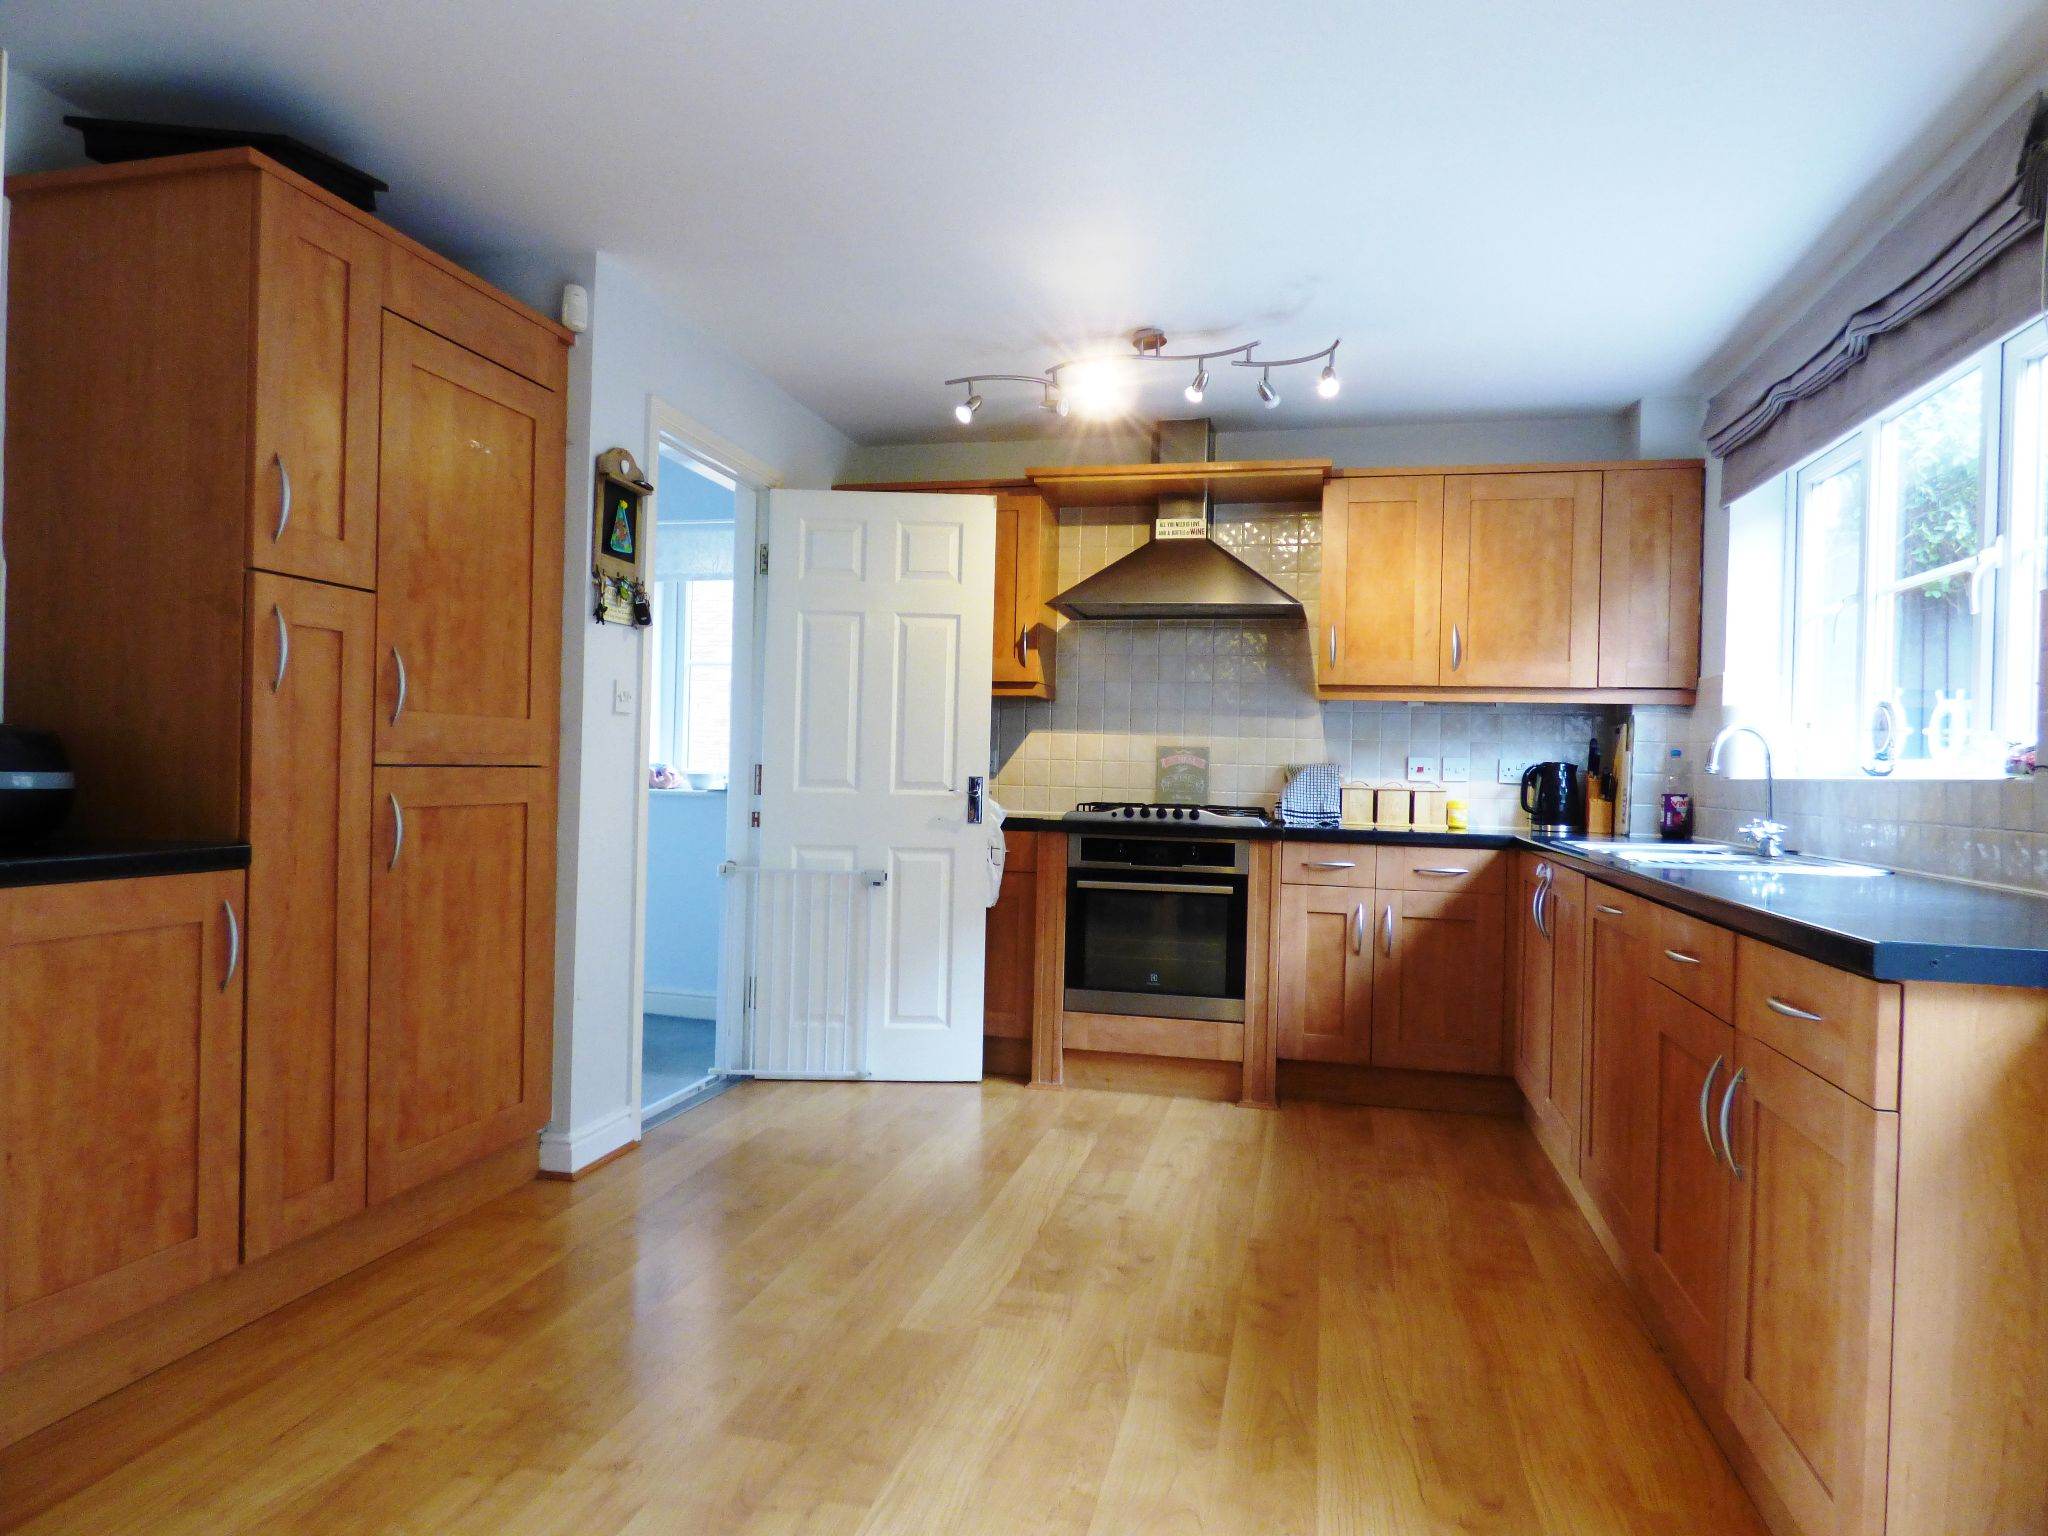 4 Bedroom Semi-detached House For Sale - Dining Kitchen